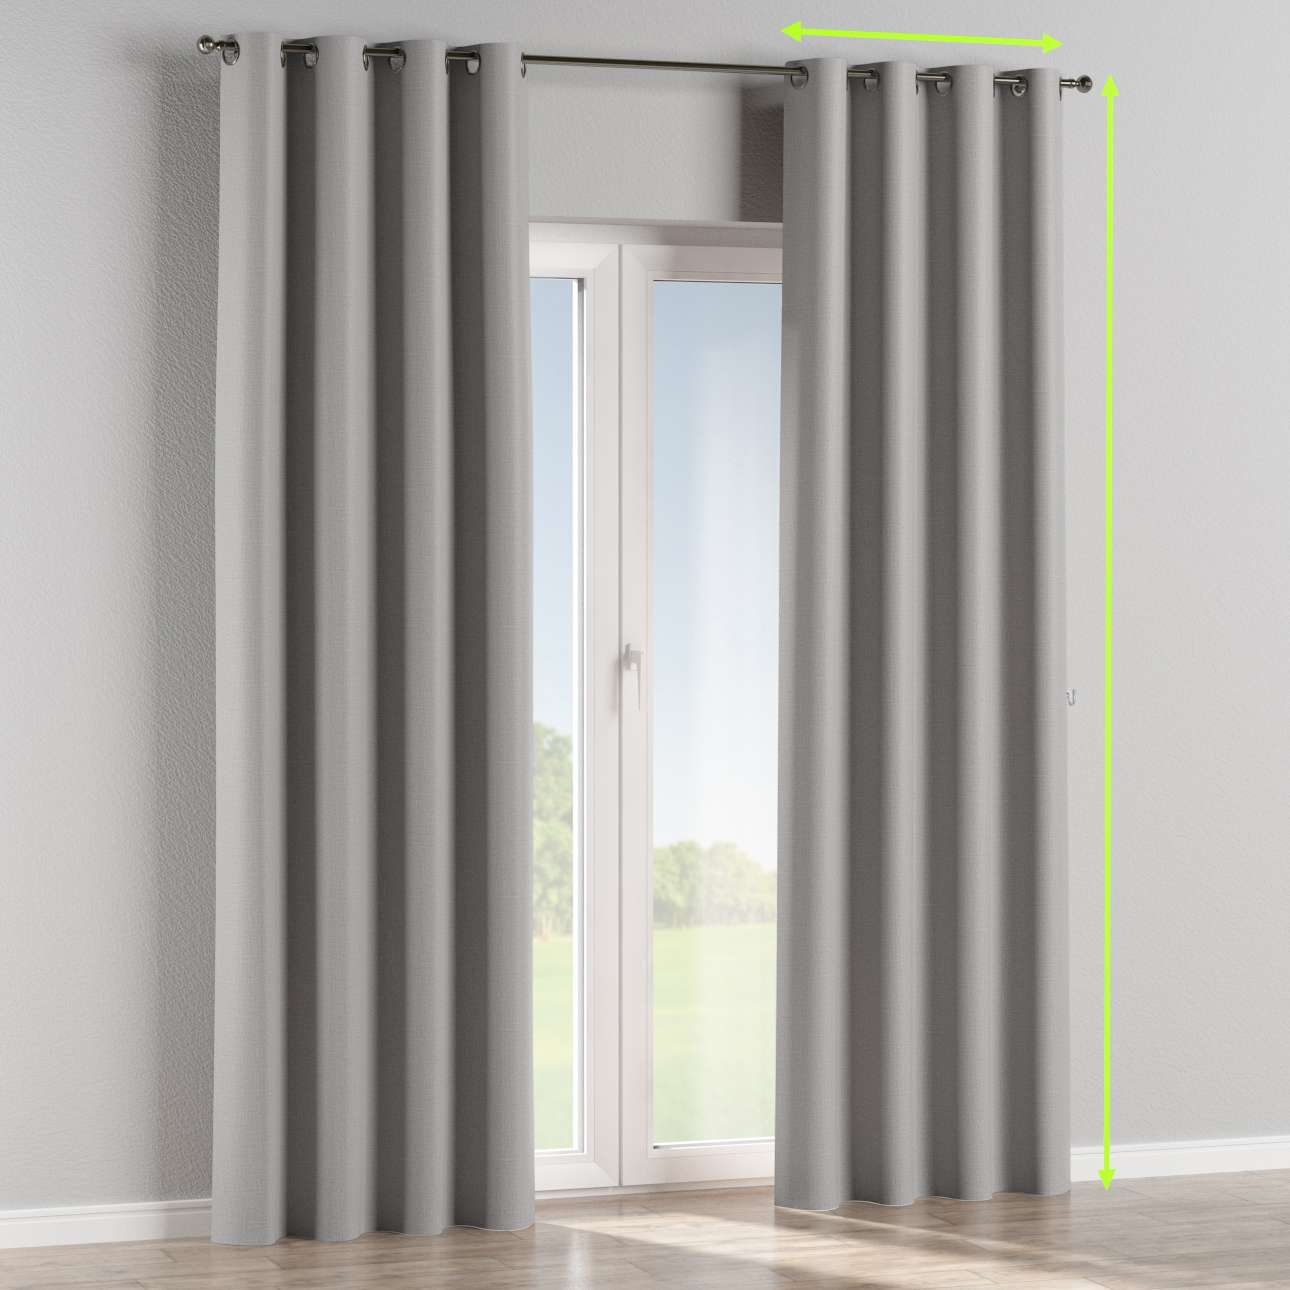 Eyelet curtain in collection Blackout, fabric: 269-64